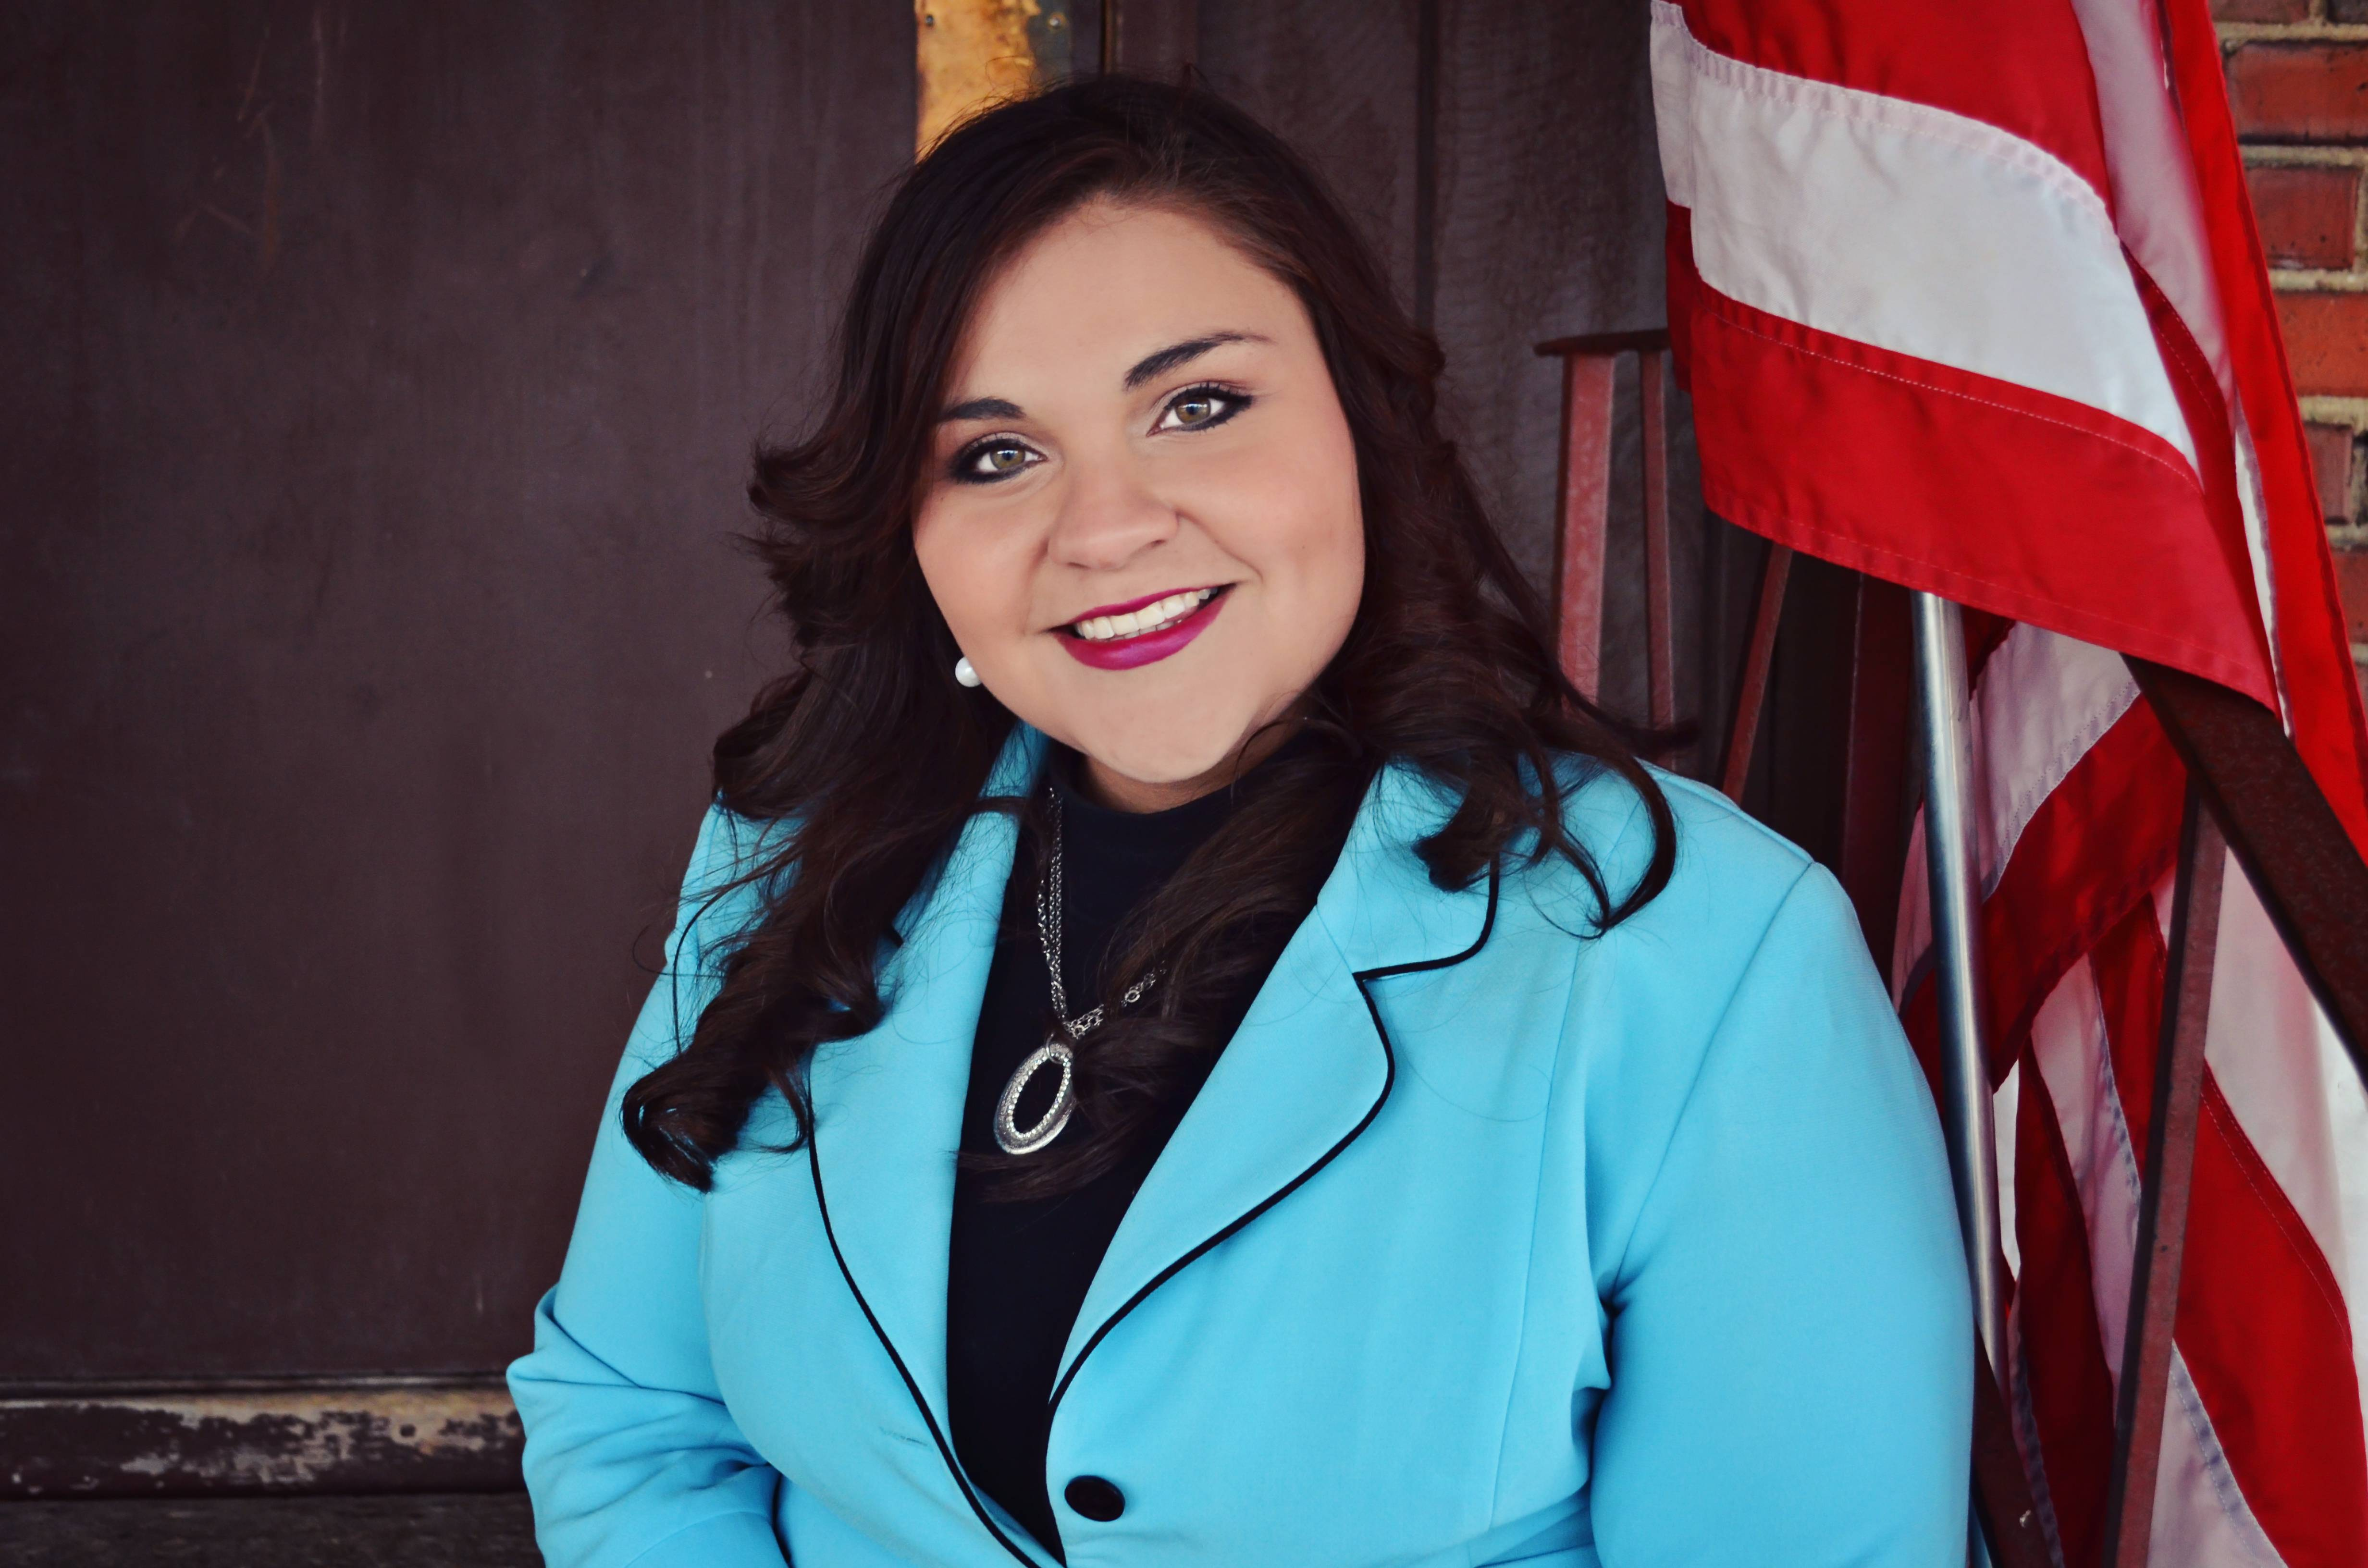 Rosalinda Delgado, running for West Chicago City Council Ward 2 (4-year Term)